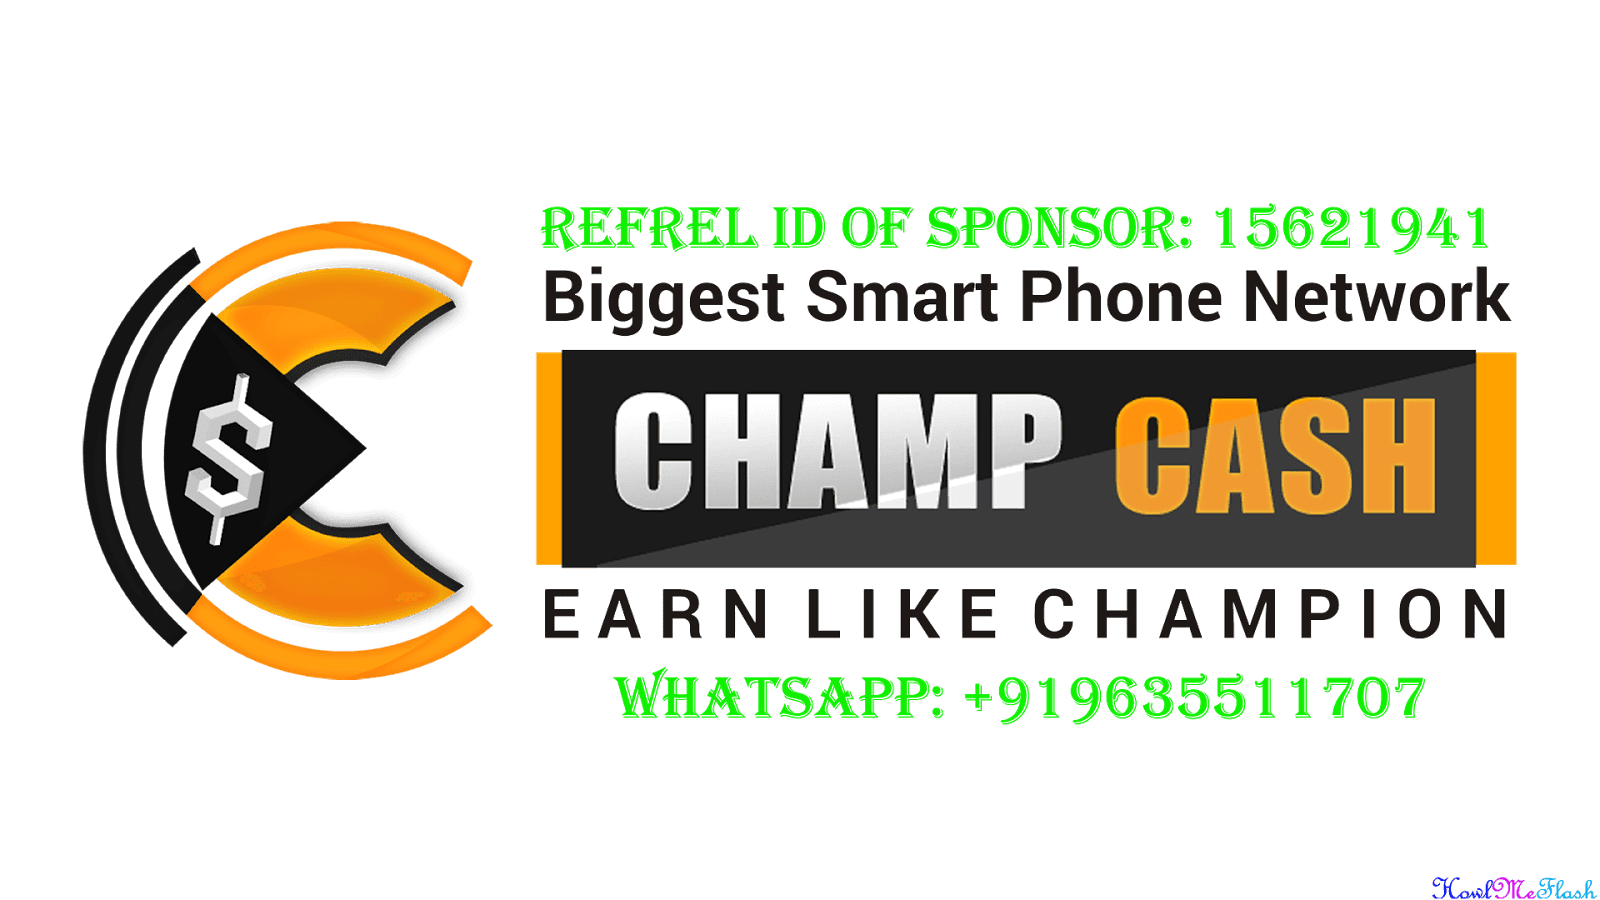 Champcash Refer Id of Sponsor '15621941' How To Join and Earn Real Money